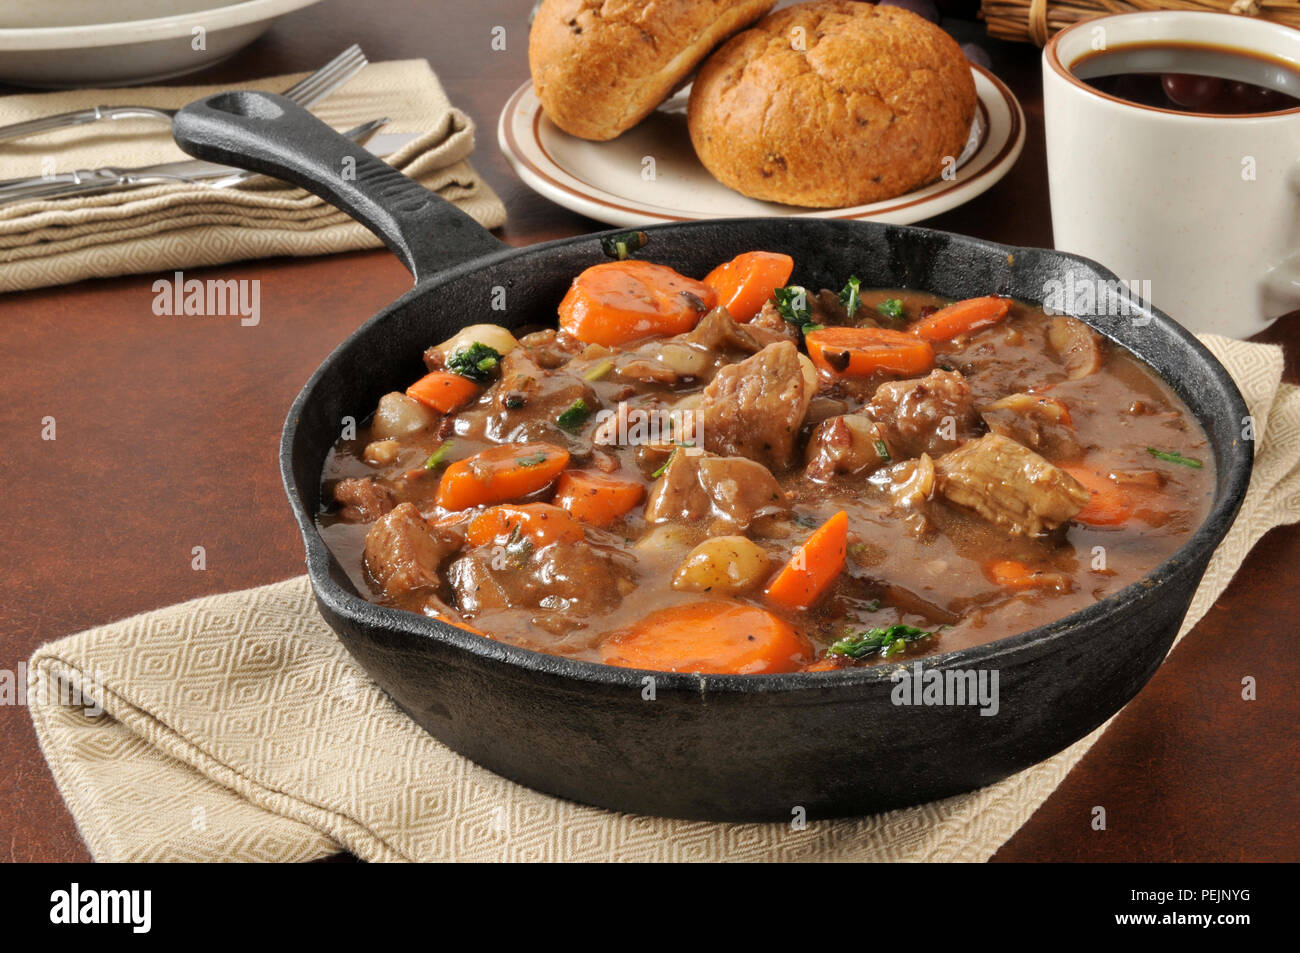 Gourmet Beef Stew Bourguignon With Carrots Pearl Onions And Burgundy Wine Sauce Stock Photo Alamy